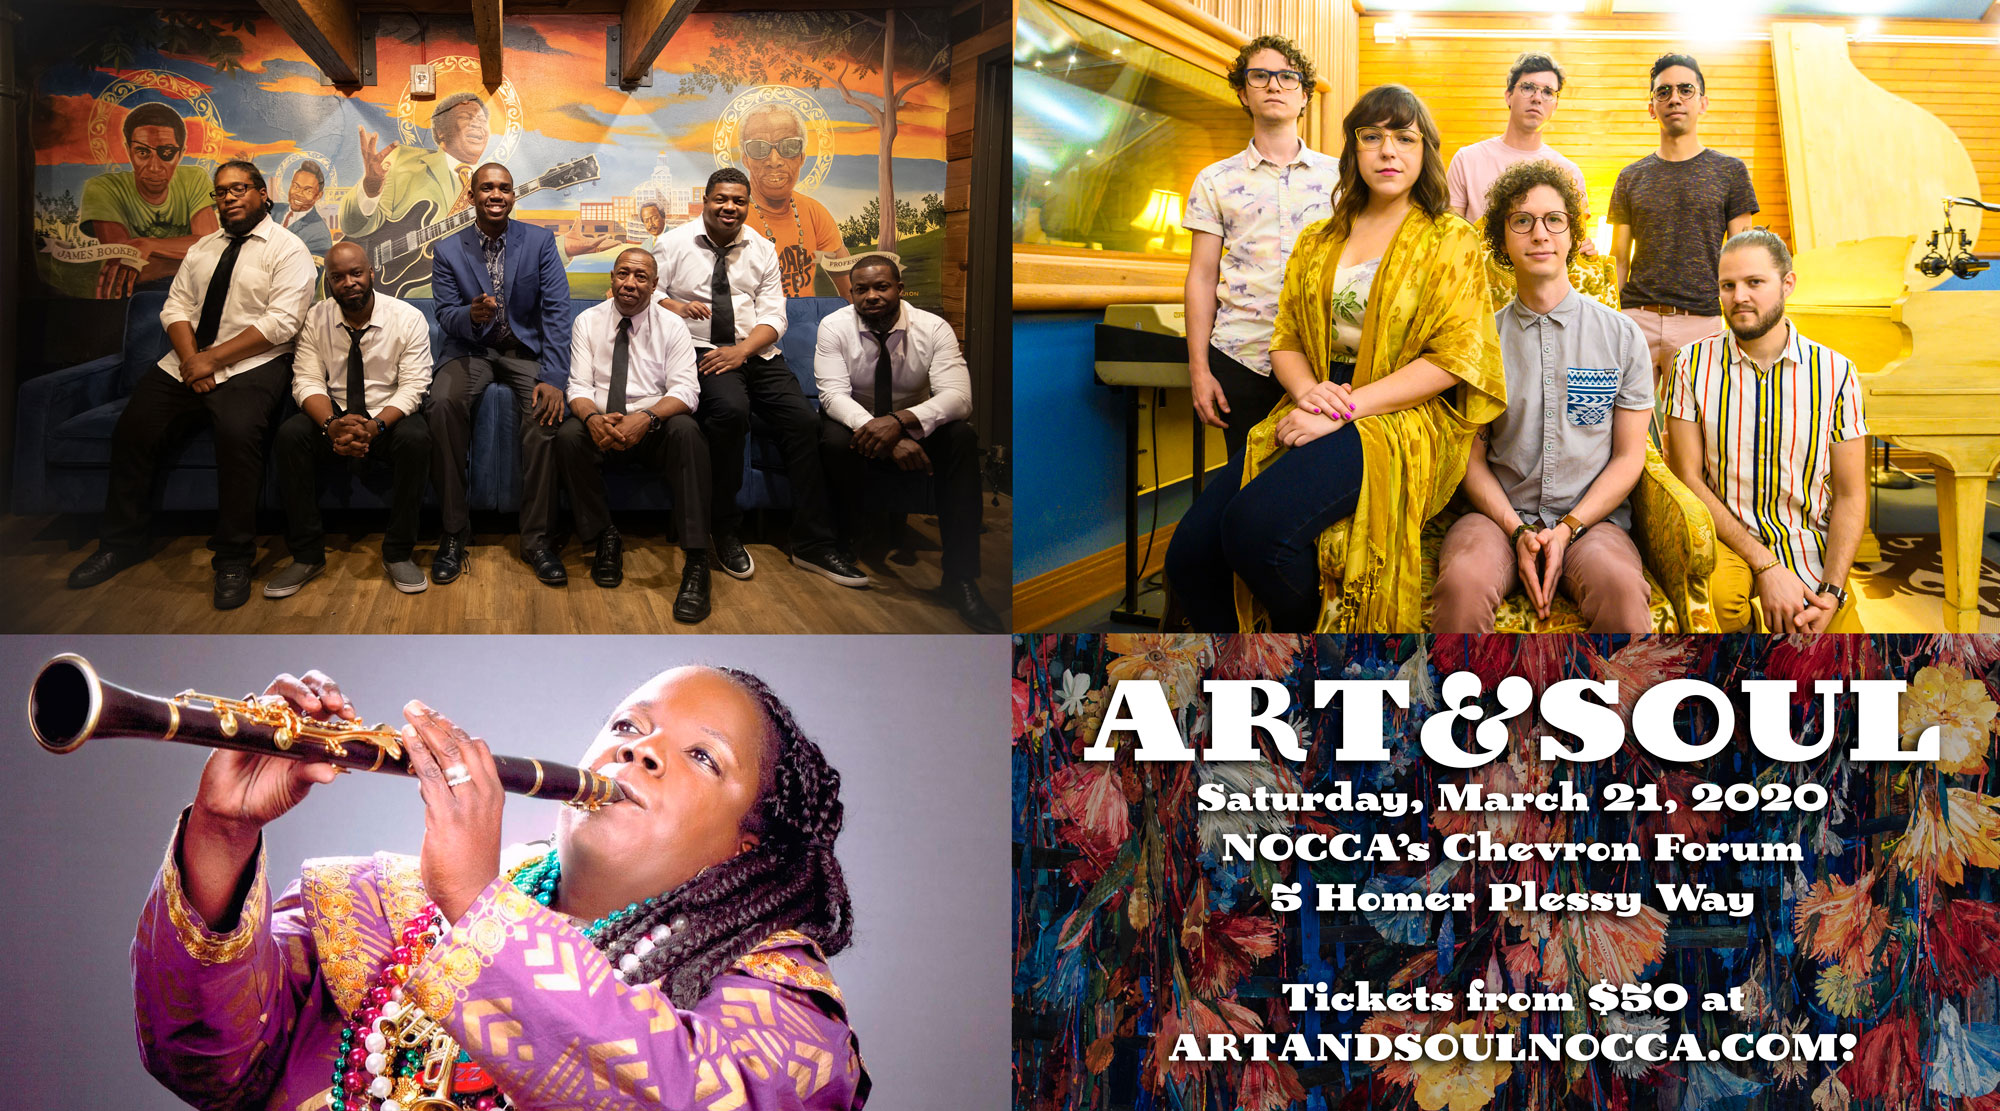 ART&SOUL 2020 is Saturday, March 21 at NOCCA